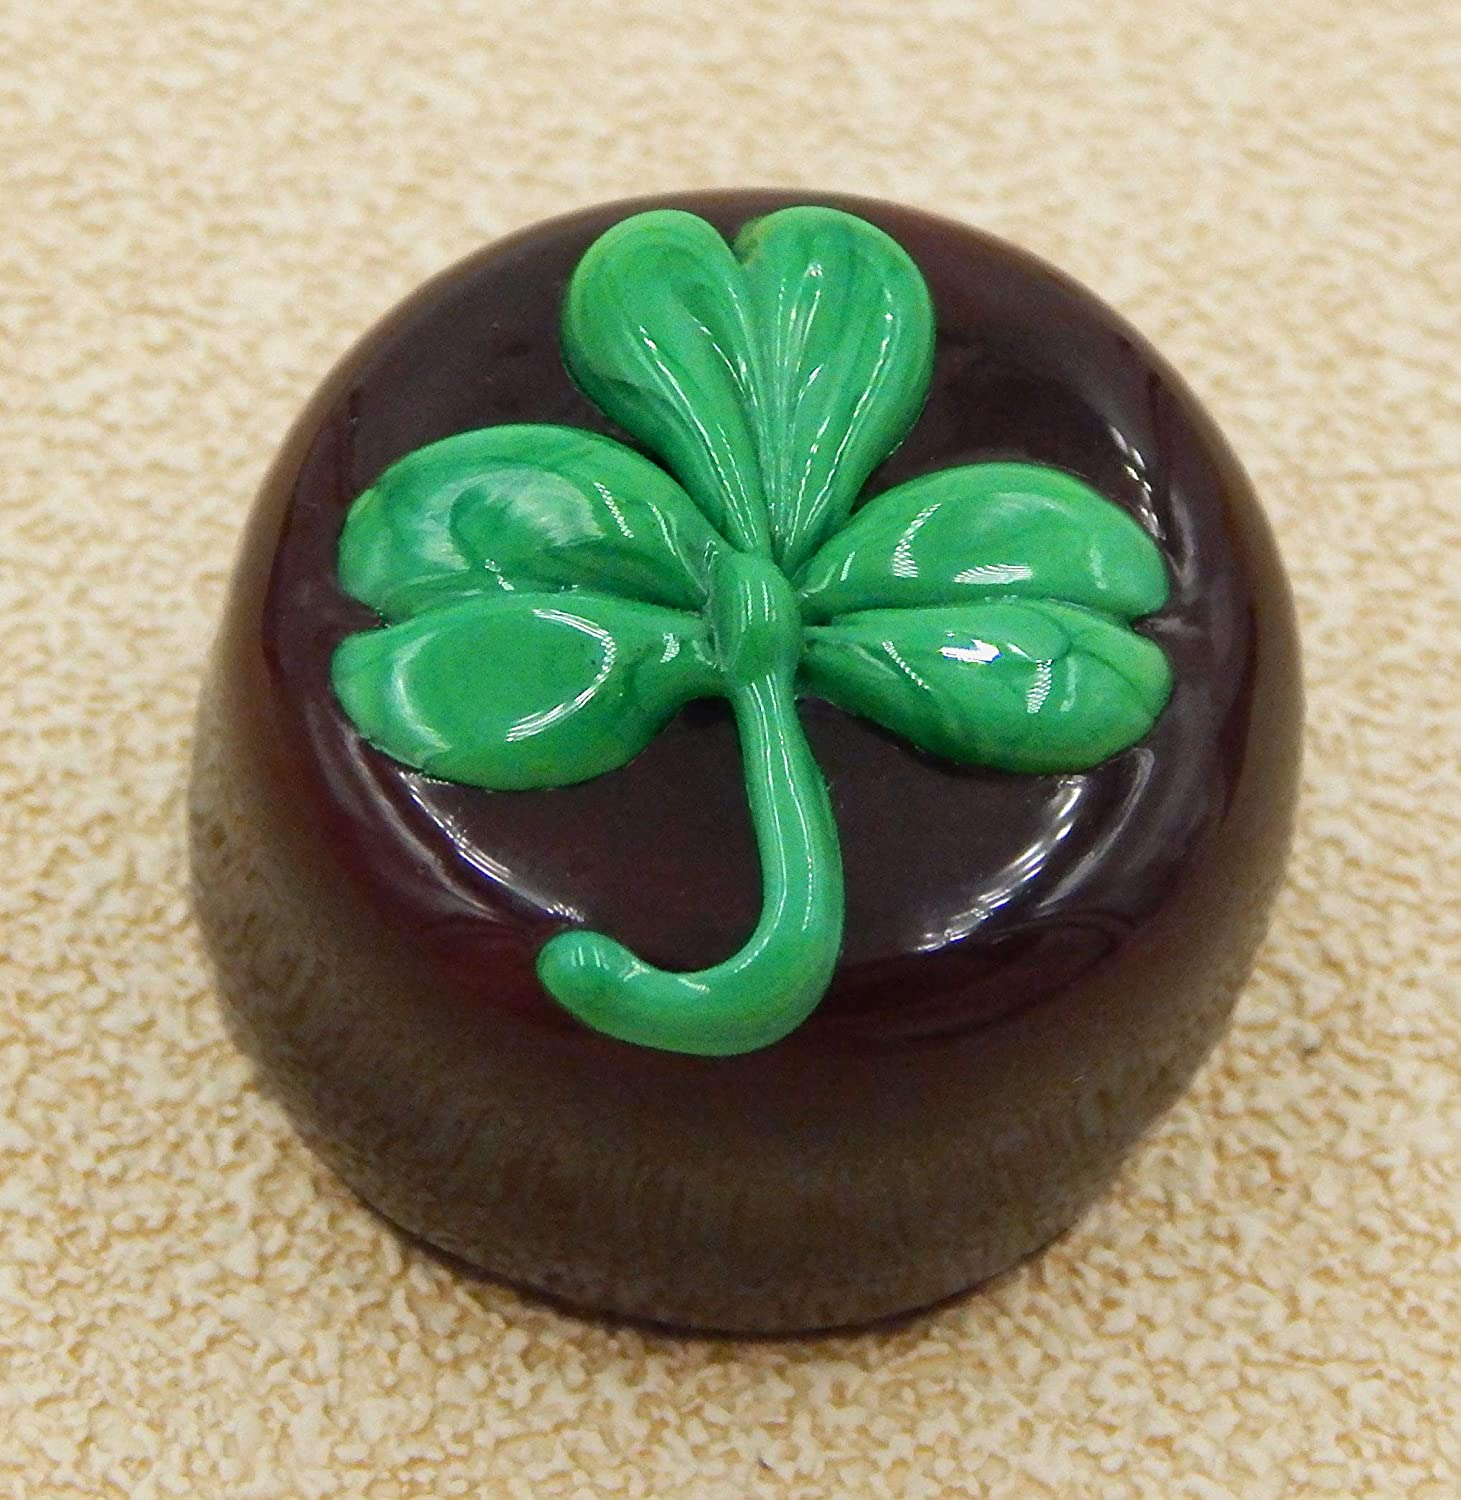 Patricks Day Chocolate Shamrock Handmade Sculpture Gift Figurine Home Art Glass St